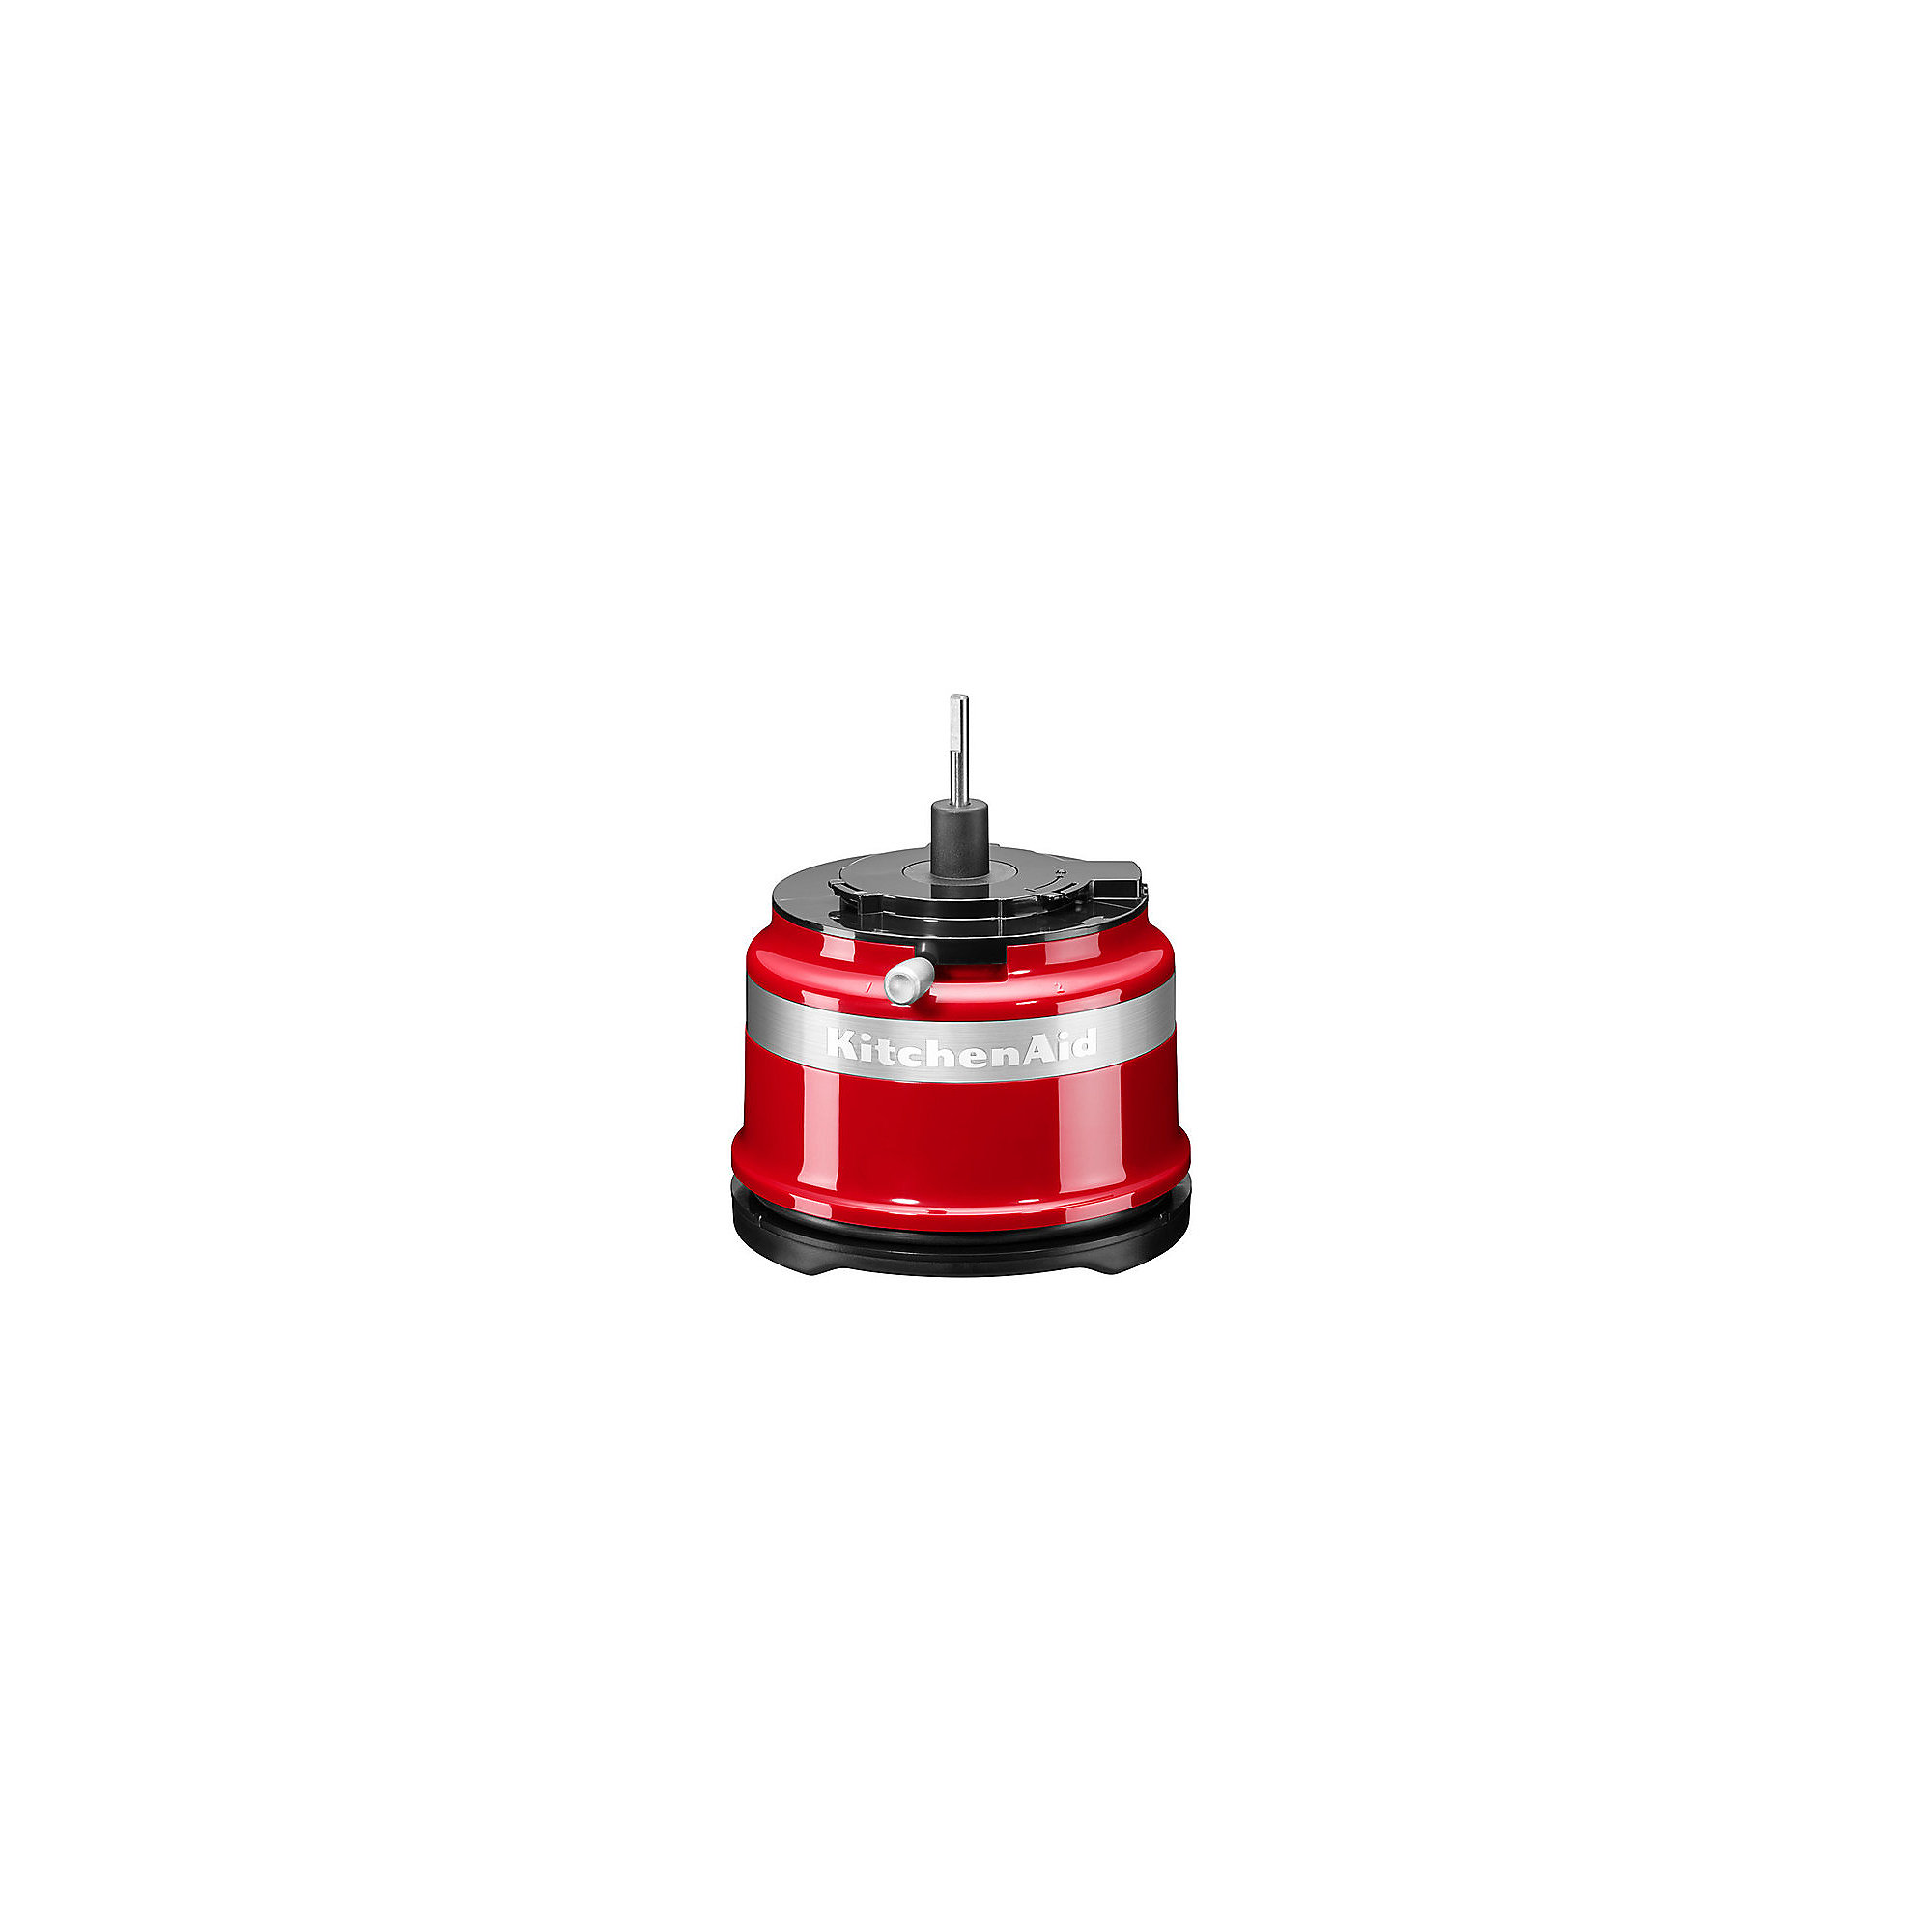 KitchenAid 5KFC3516EER Zerkleinerer 240W 0,83L empire rot